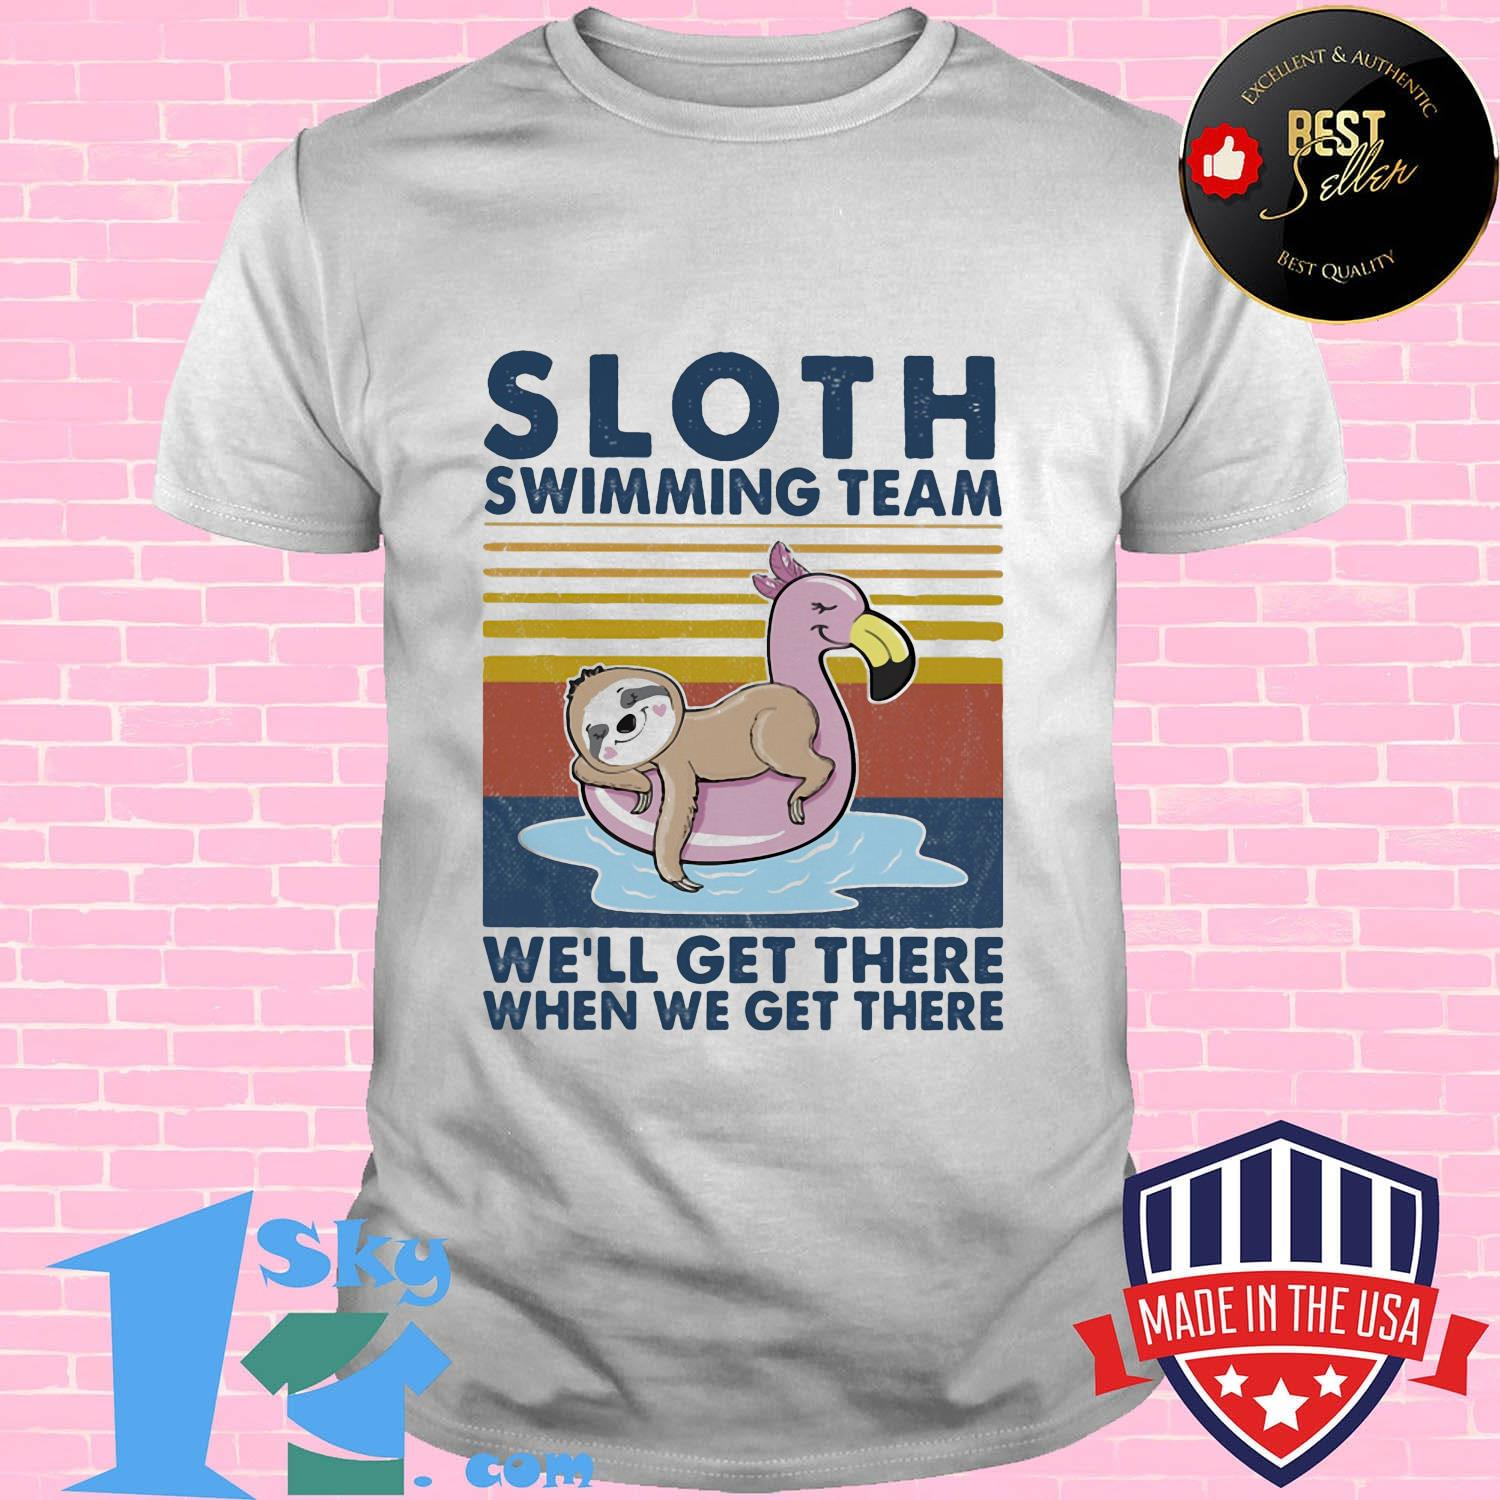 58168825 official sloth swimming team we will get there when we get there vintage retro shirt unisex - Shop trending - We offer all trend shirts - 1SkyTee